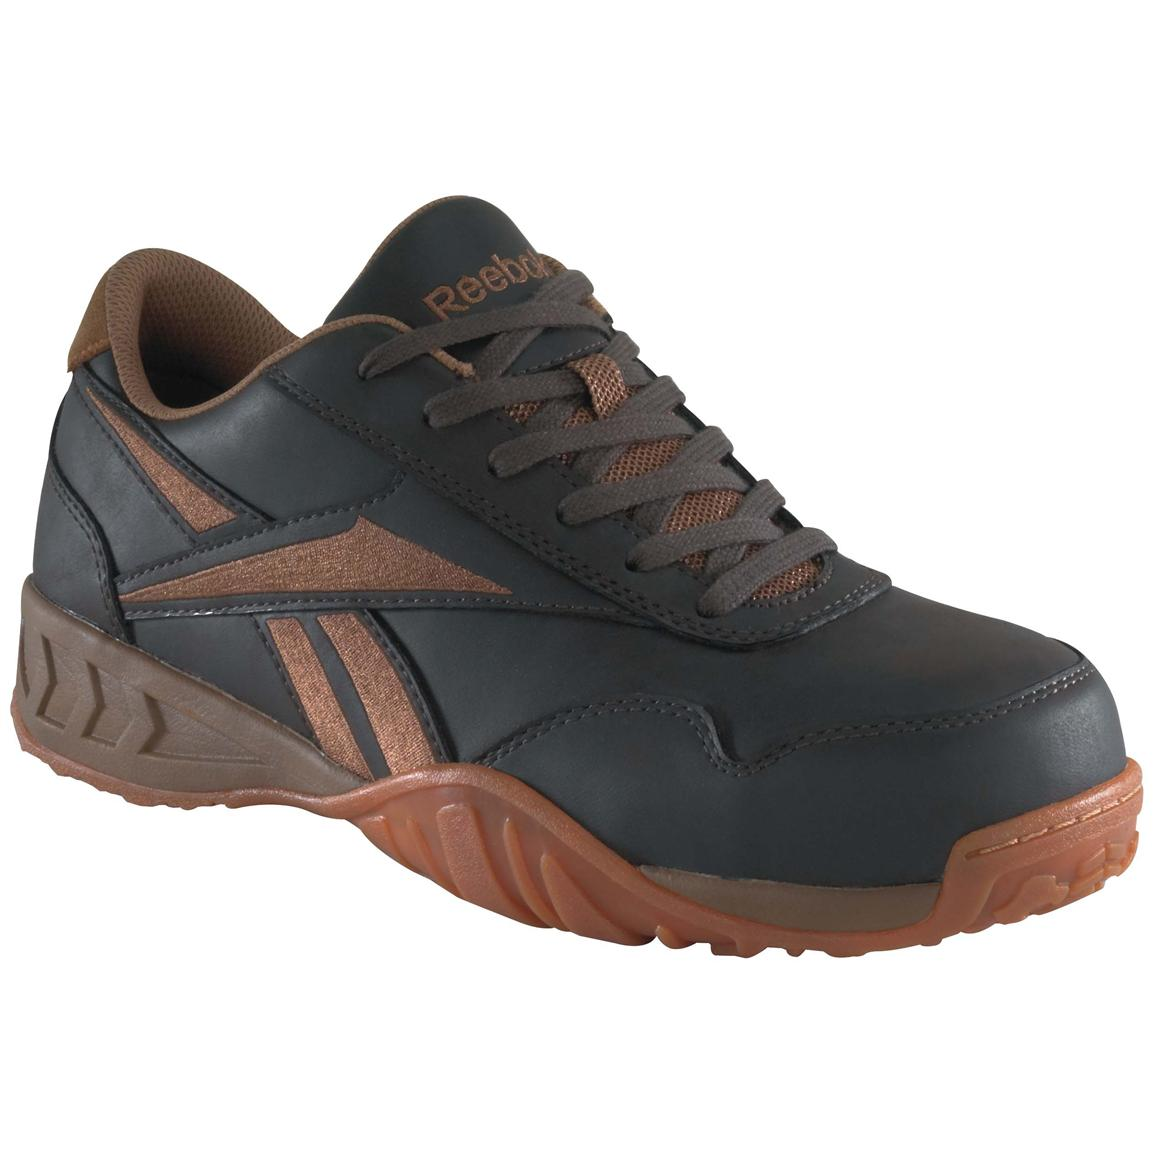 Women's Reebok® Low Profile Composite Toe Oxford Shoes, Brown